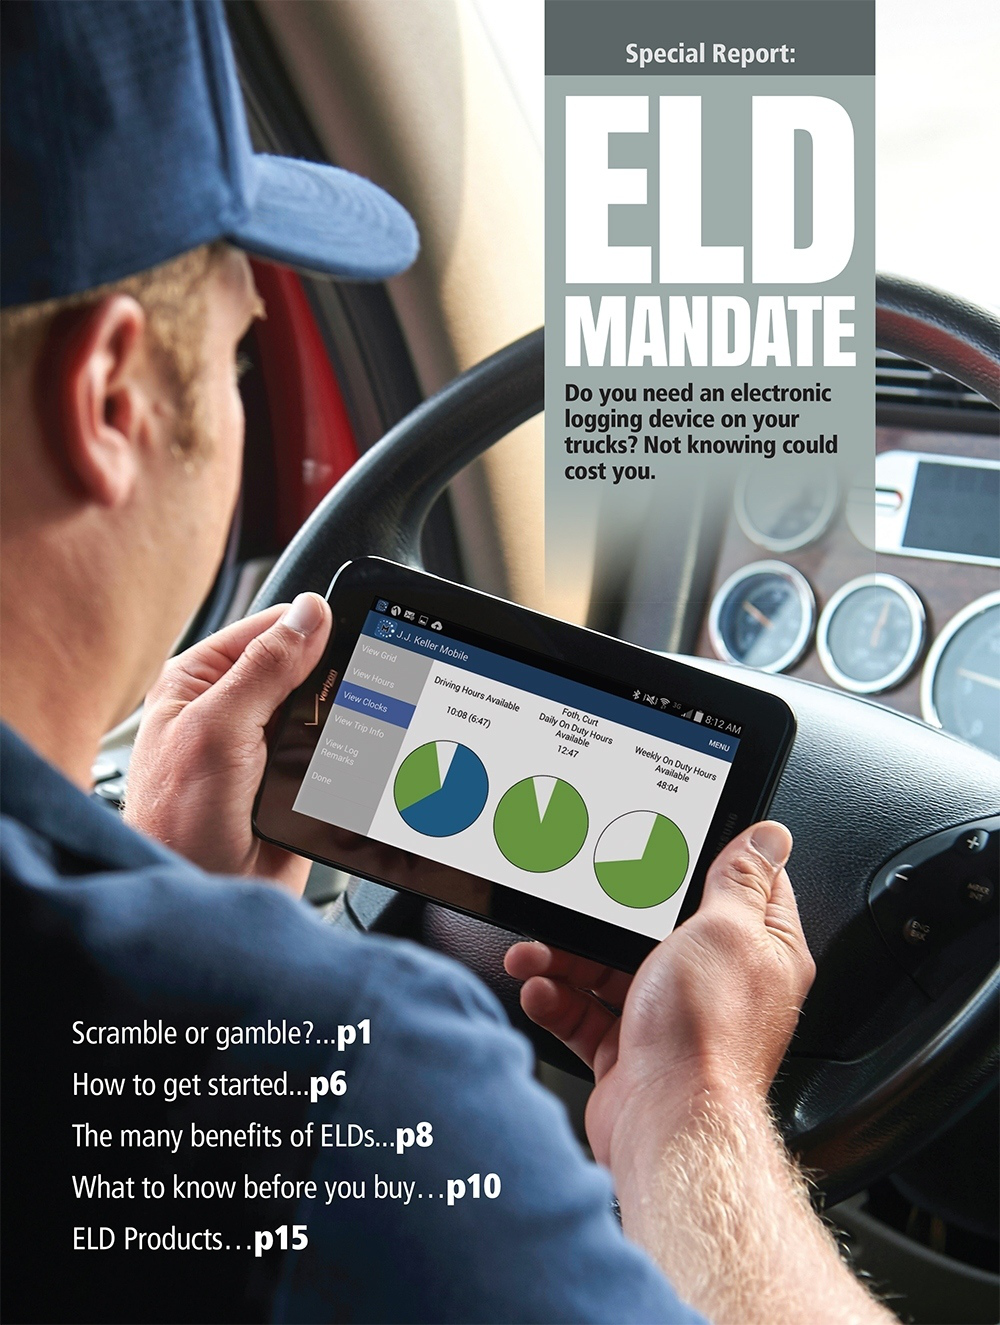 ELD Mandate: As contractors scramble to comply with